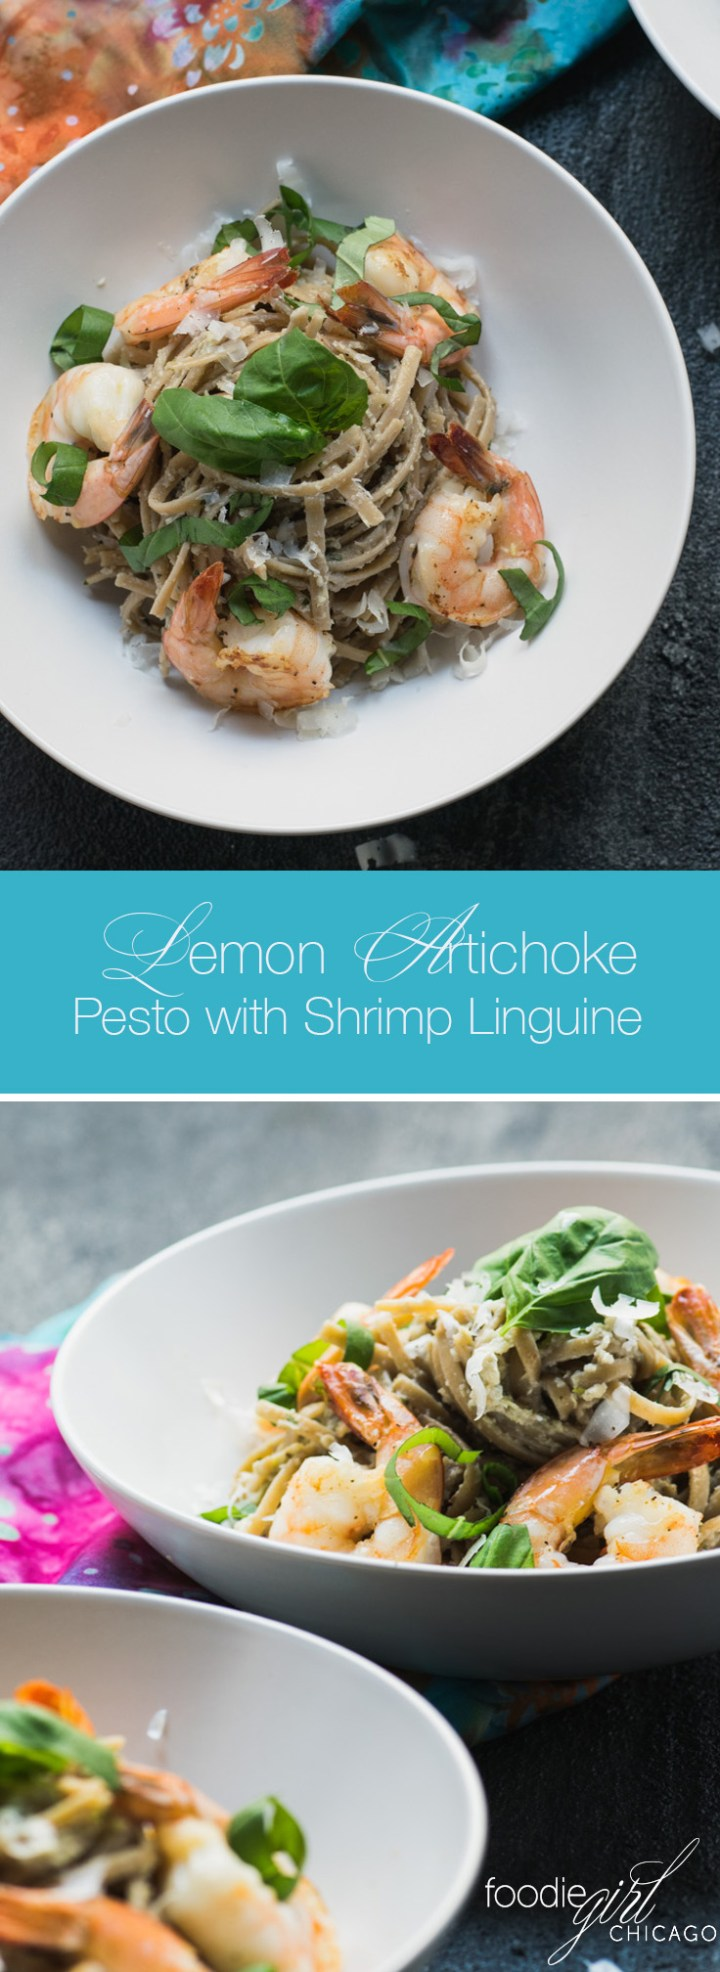 Lemon Artichoke Pesto with Shrimp Linguine